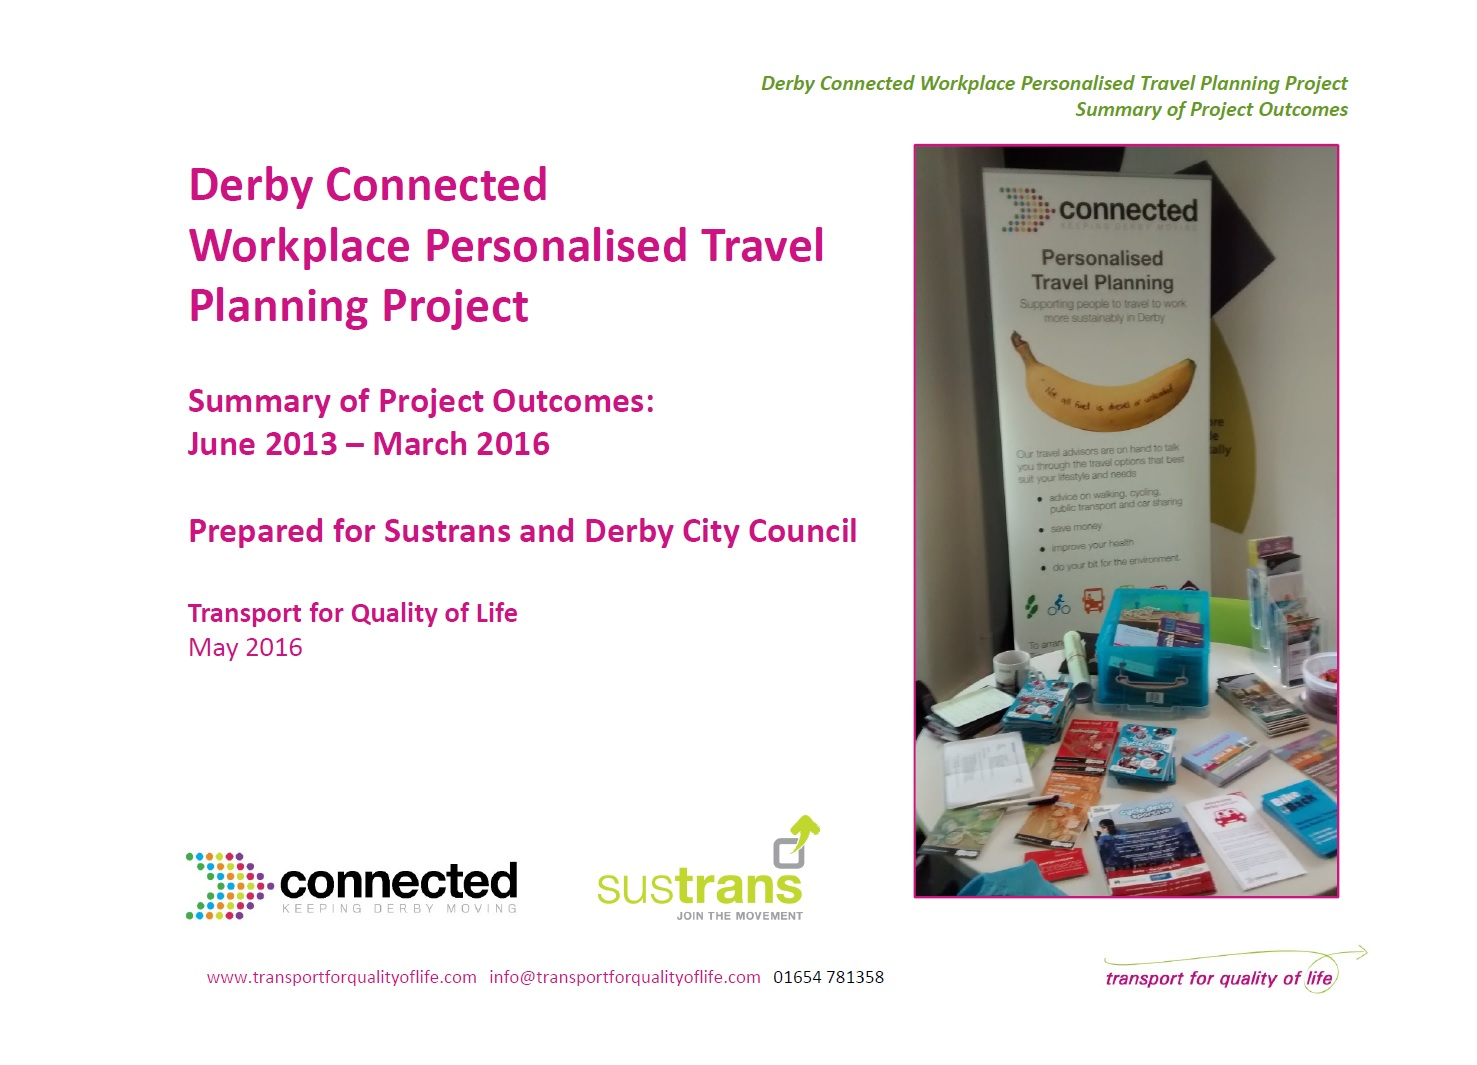 Derby Connected summary of outcomes cover image